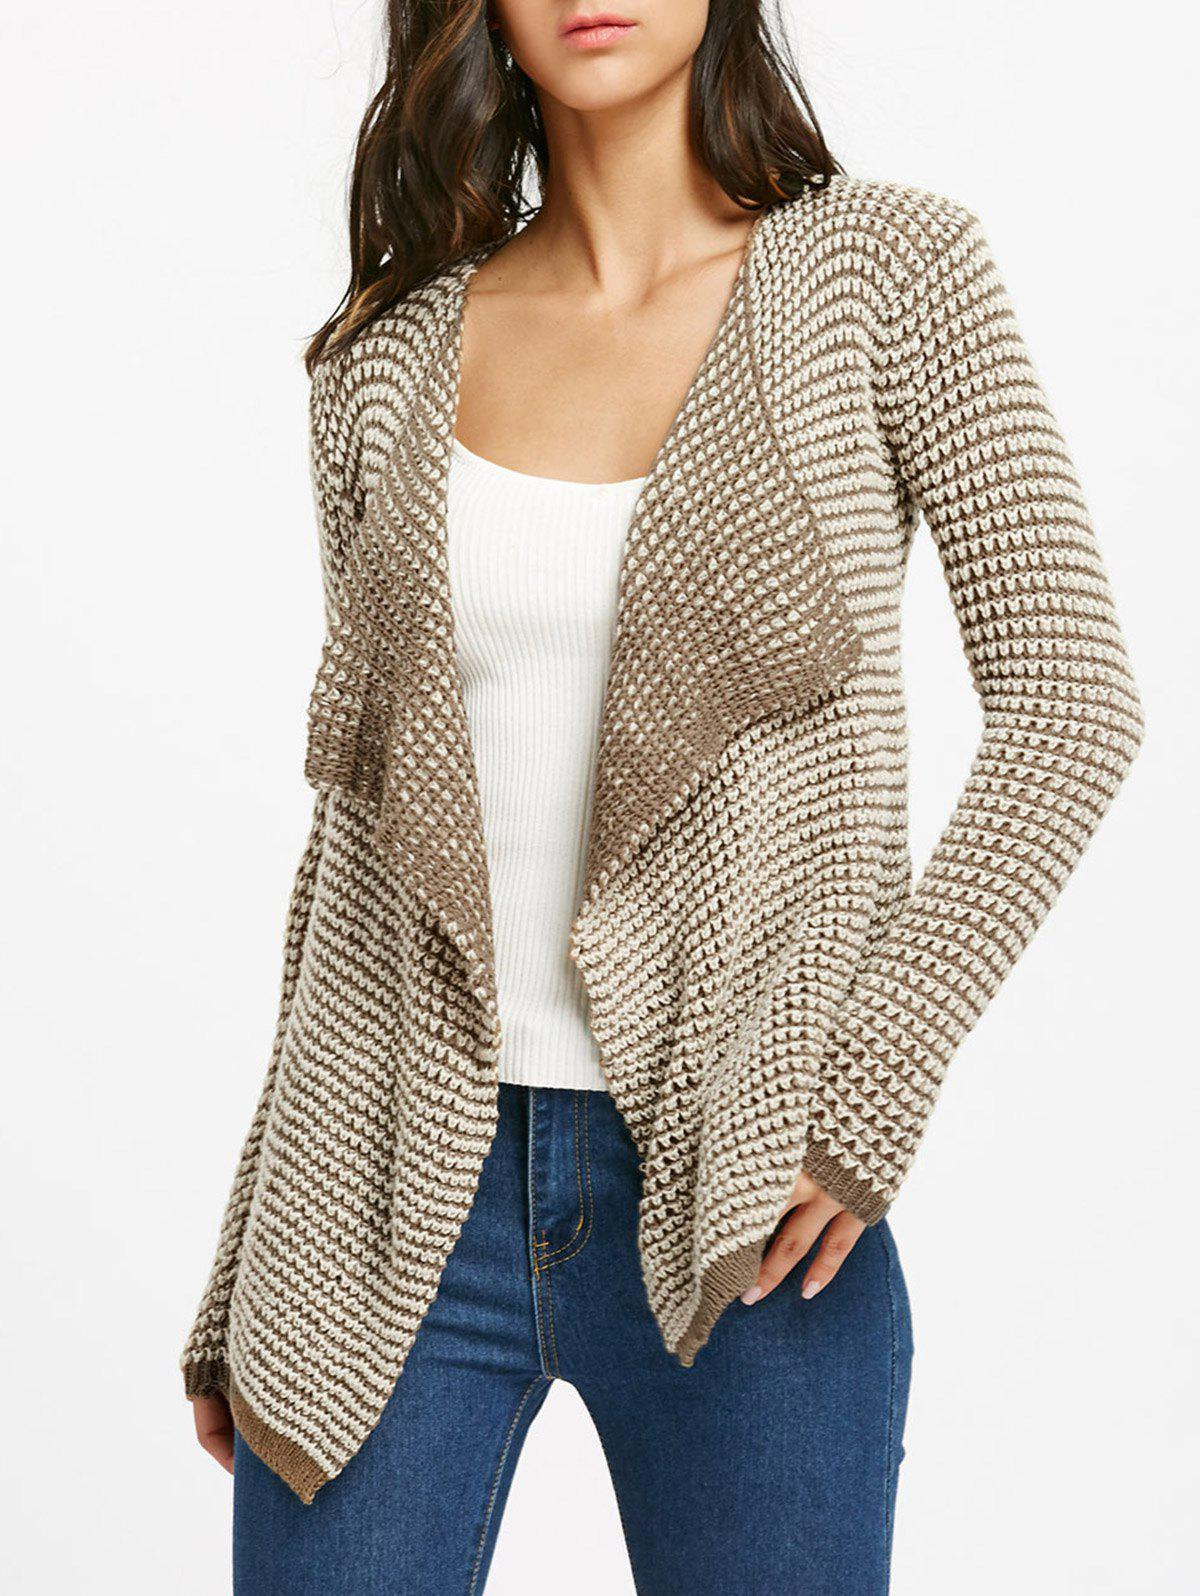 Casual Collarless Long Sleeve Knitted Cardigan For WomenWOMEN<br><br>Size: S; Color: KHAKI; Type: Cardigans; Material: Polyester; Sleeve Length: Full; Collar: Collarless; Style: Fashion; Weight: 0.2850kg; Package Contents: 1 x Cardigan;